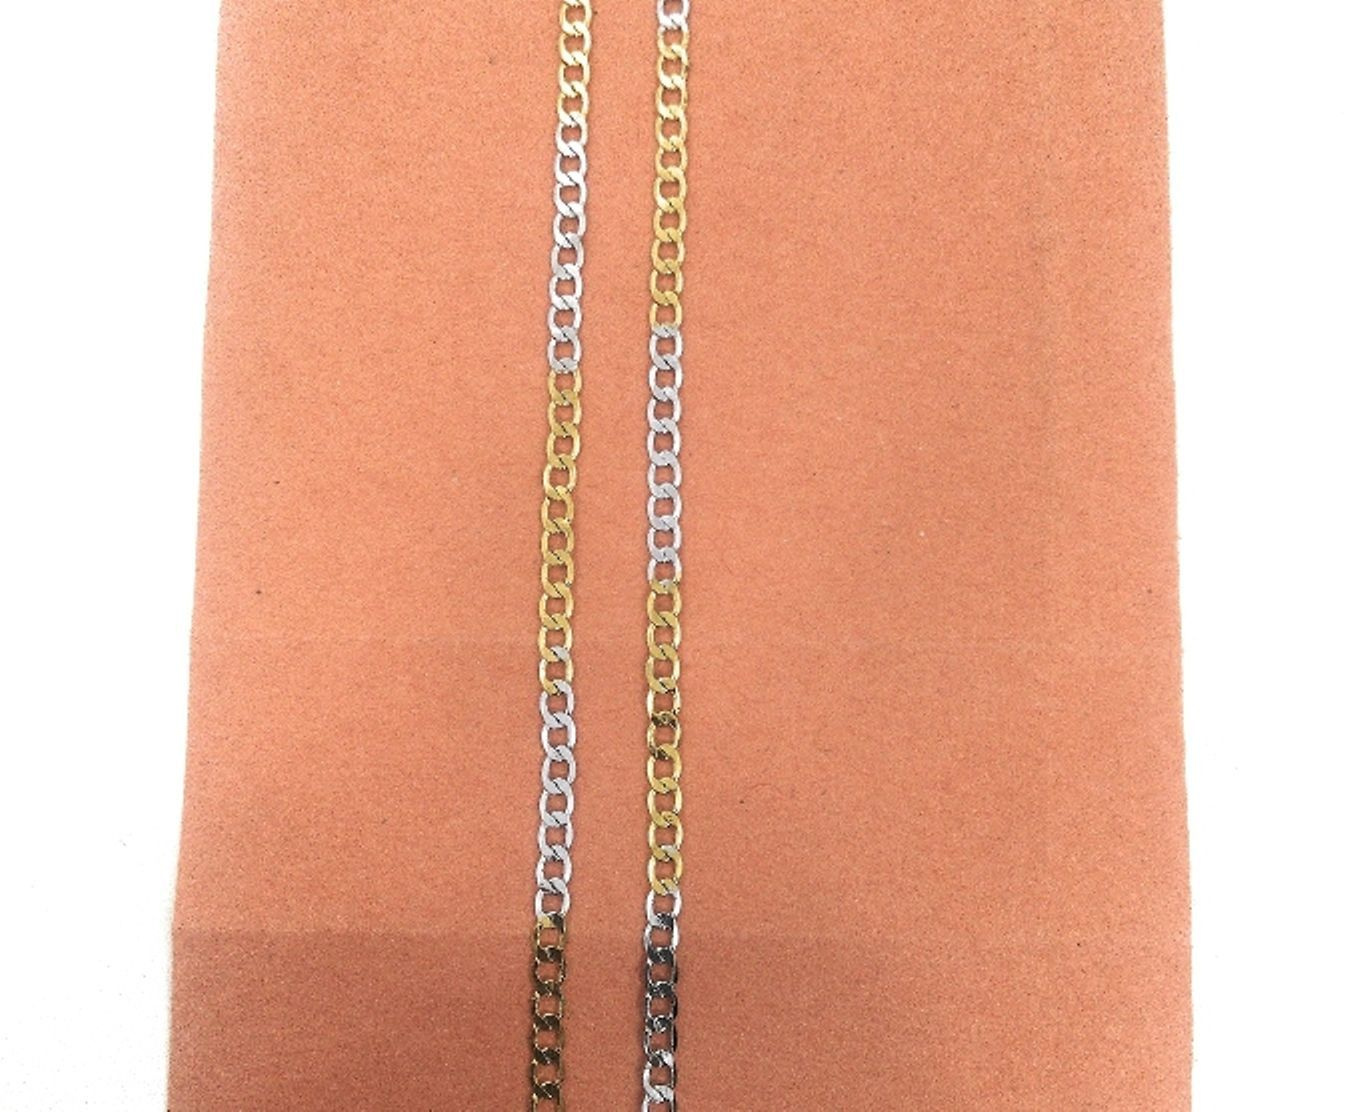 Silver-Gold Two Tone Neck Chain for Men & Boys, 17.5 Inch Long, 0.3 Centimeters Wide, Metal Chain, Short Chain Close to Neck